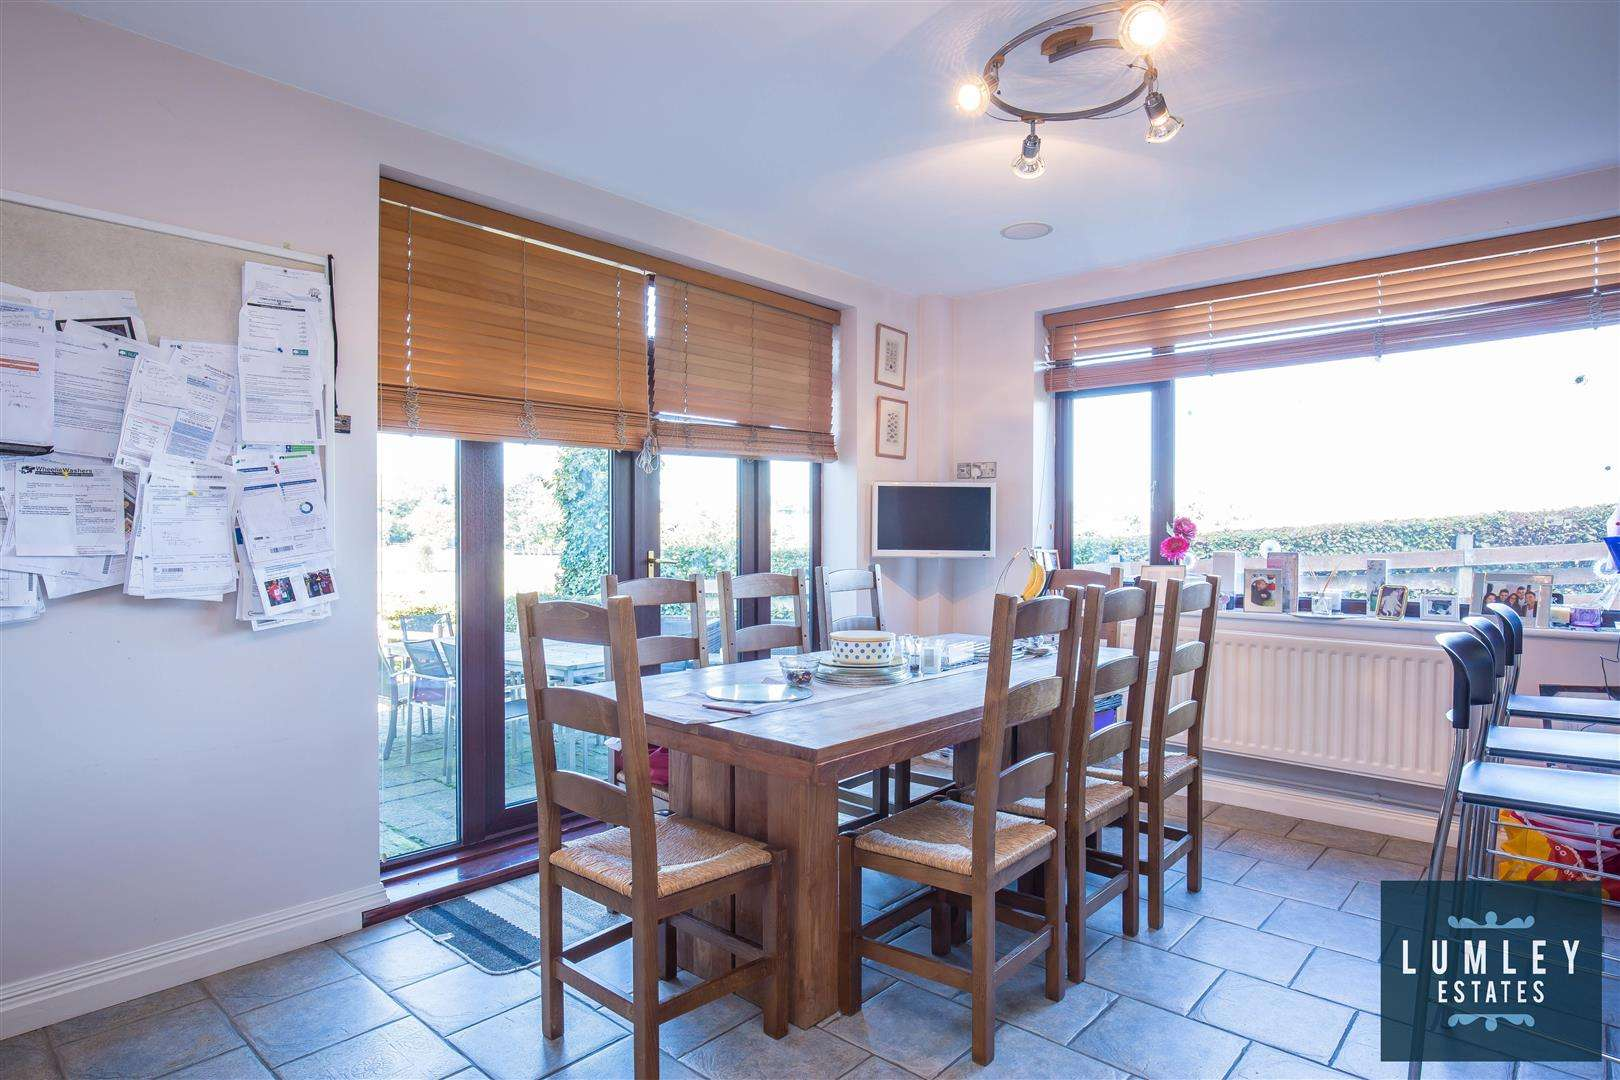 6 bed to rent - (Property Image 5)